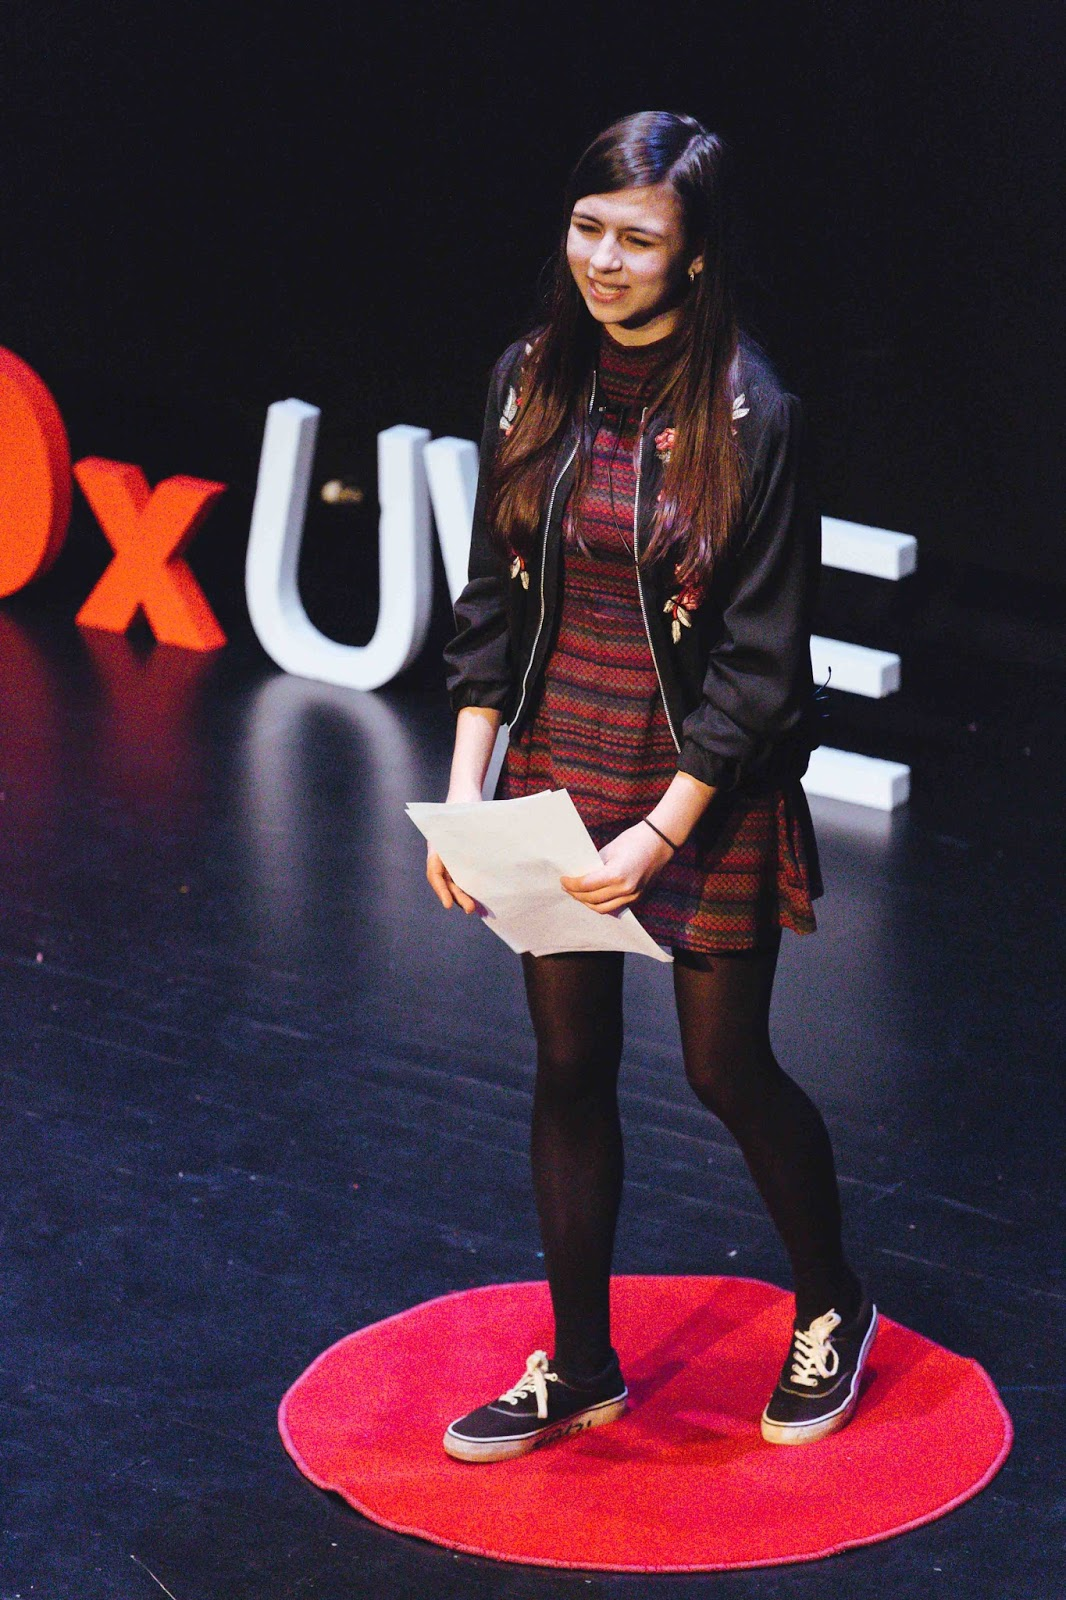 Speaking at a TEDx Conference